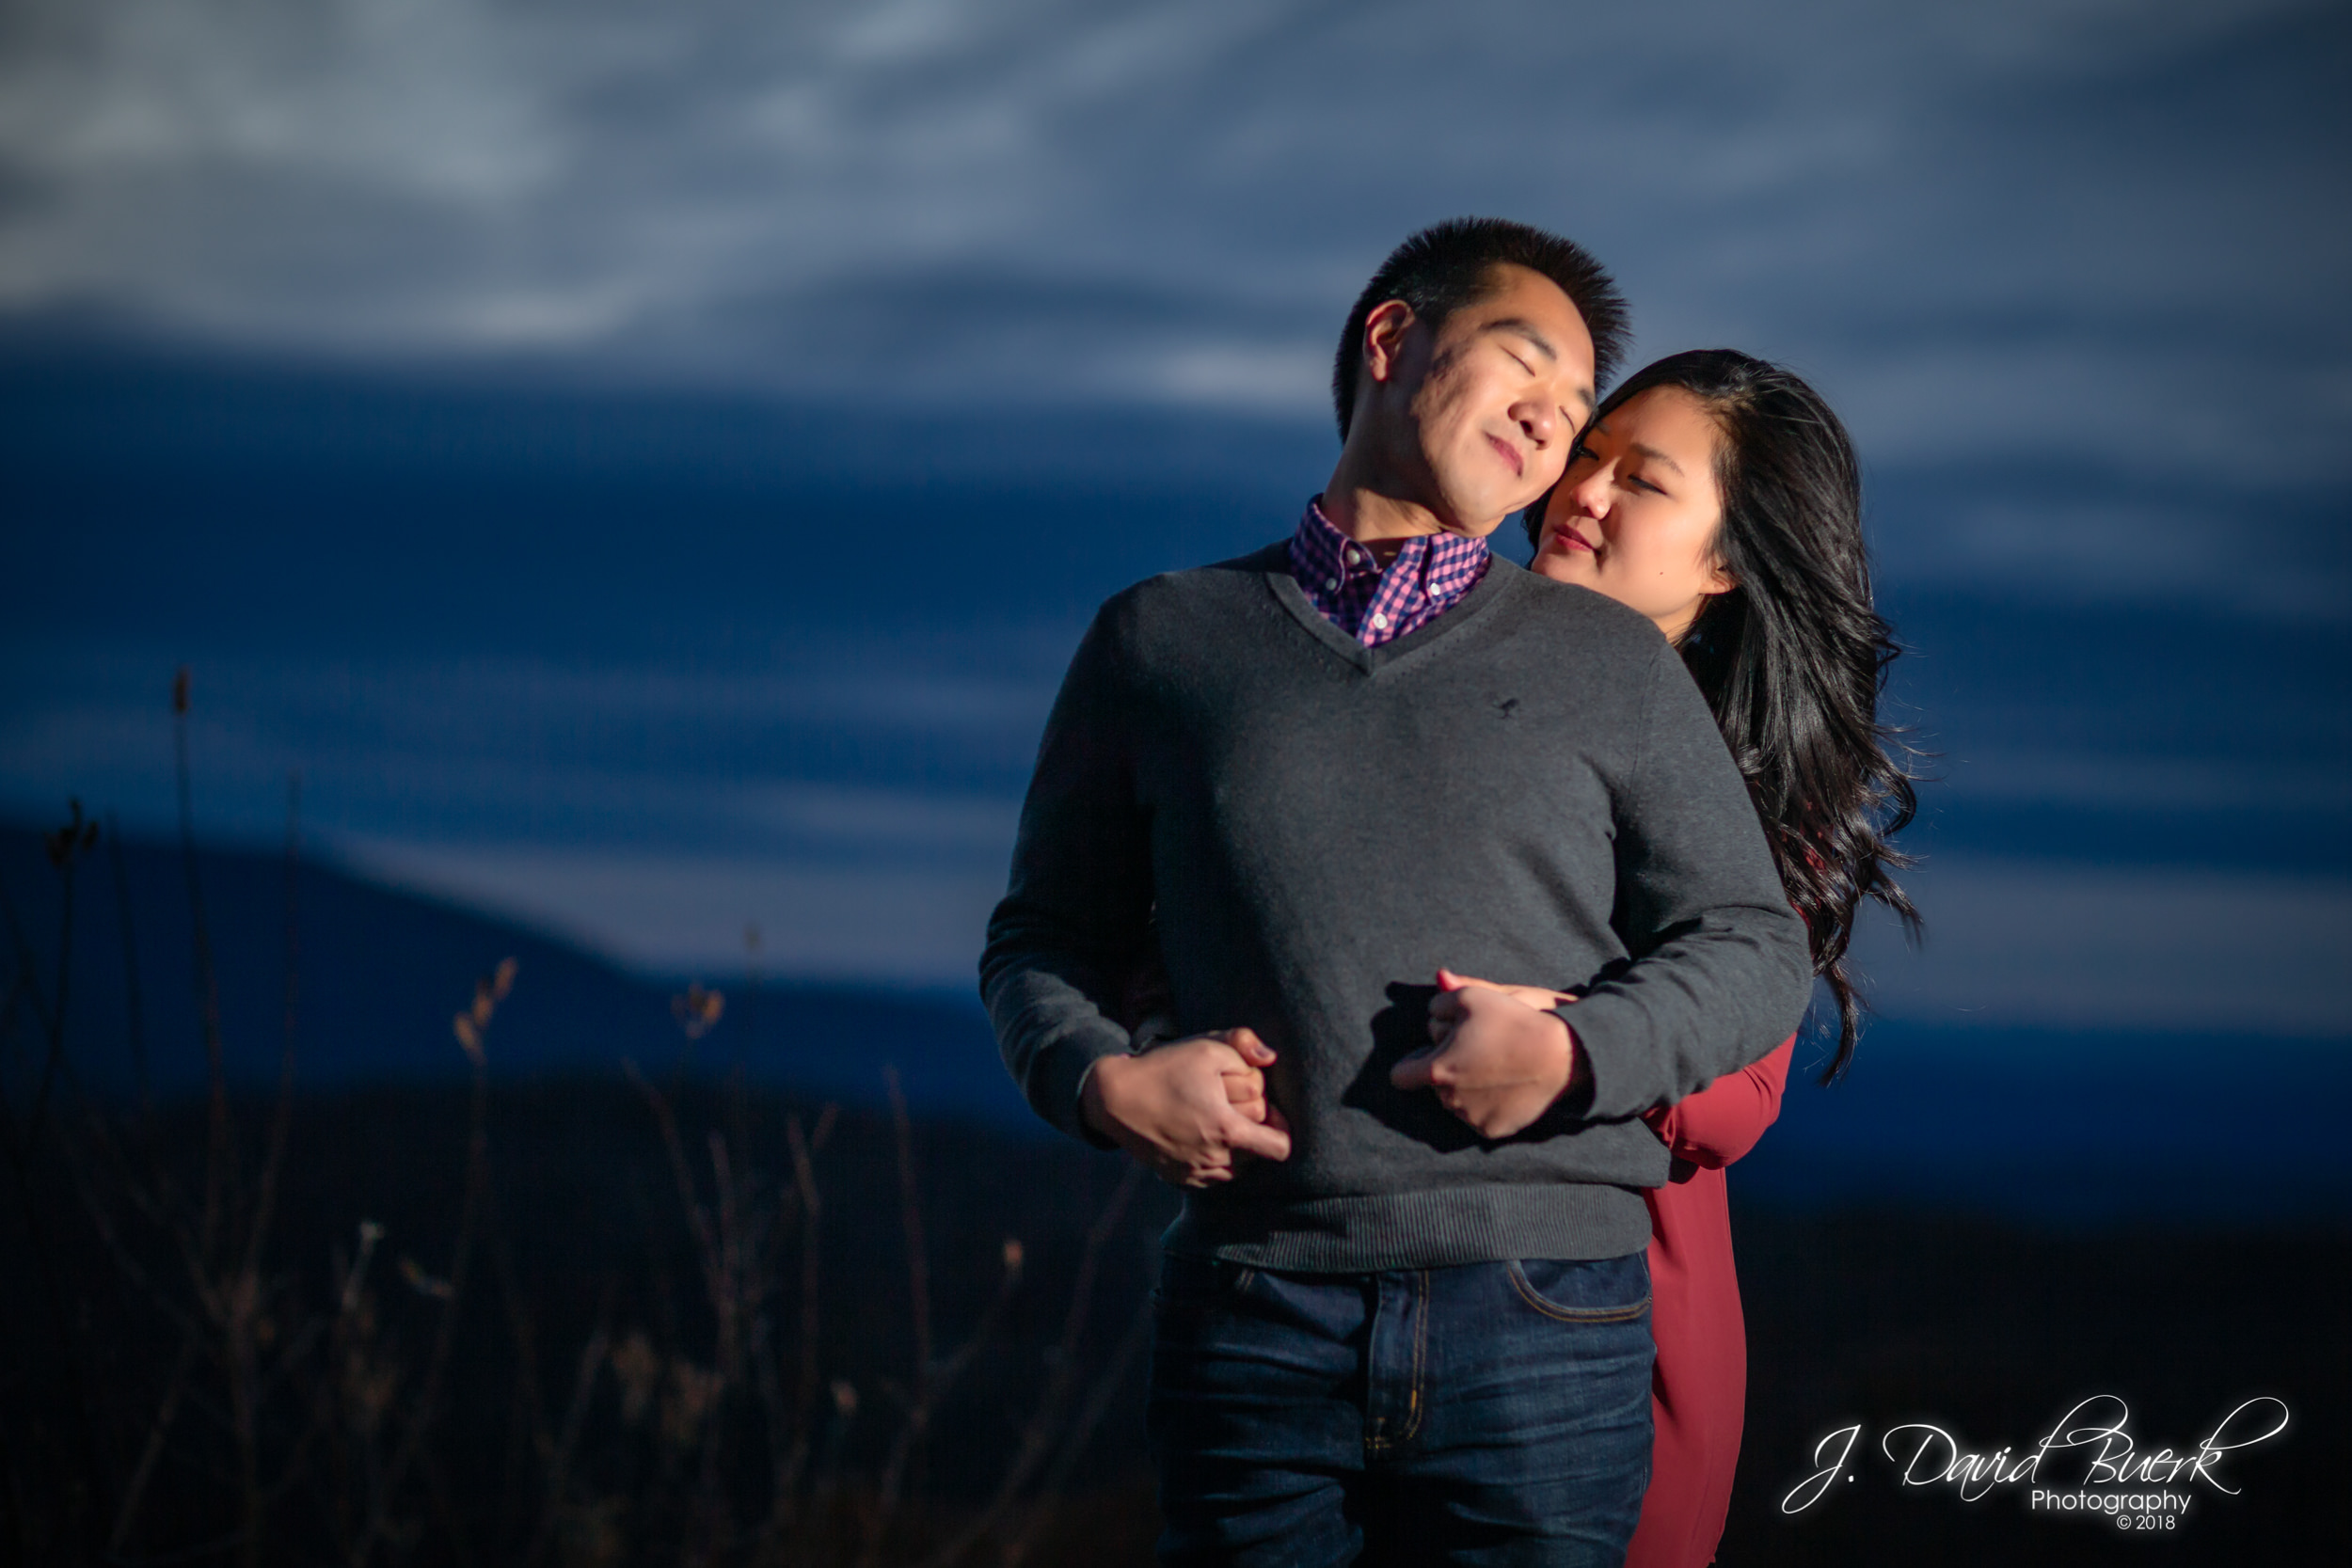 David and Tiffany during their engagement session in Shenandoah, Virginia.